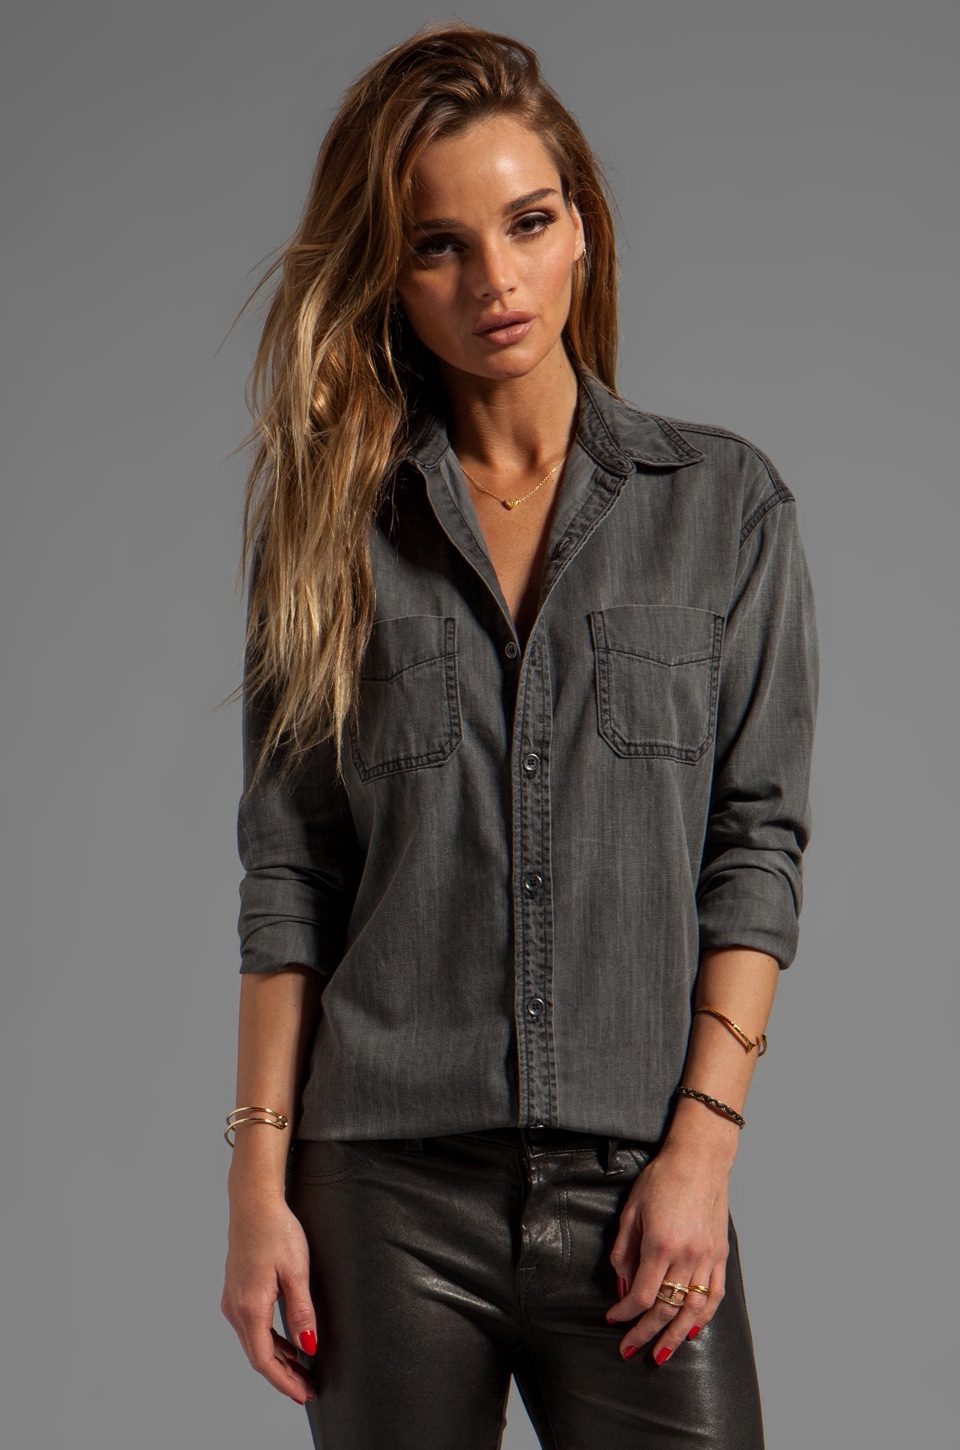 J Brand Boyfriend Marlow Shirt in Sphinx